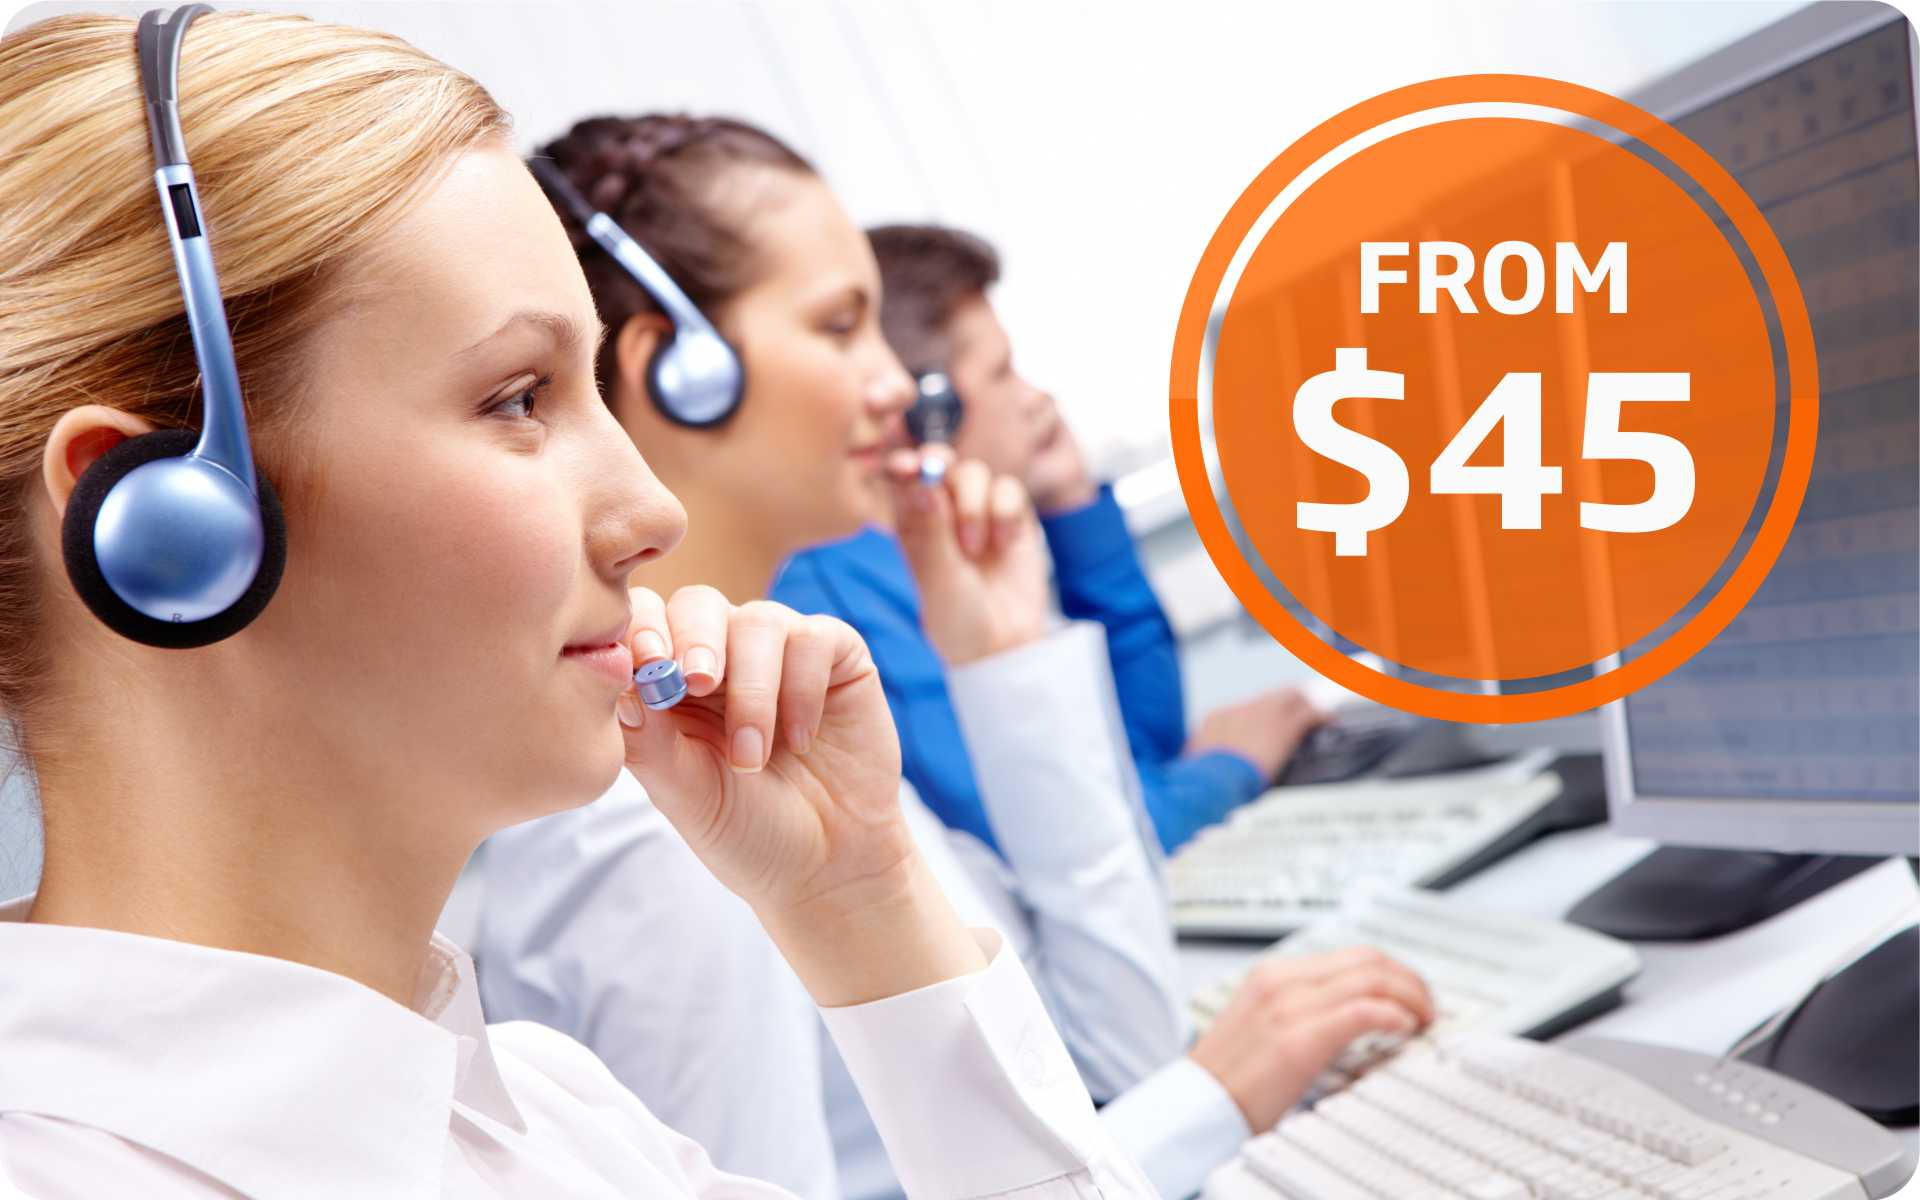 telephone-answering-services-live-phone-answering-service-australia-SHORT-130418.jpg